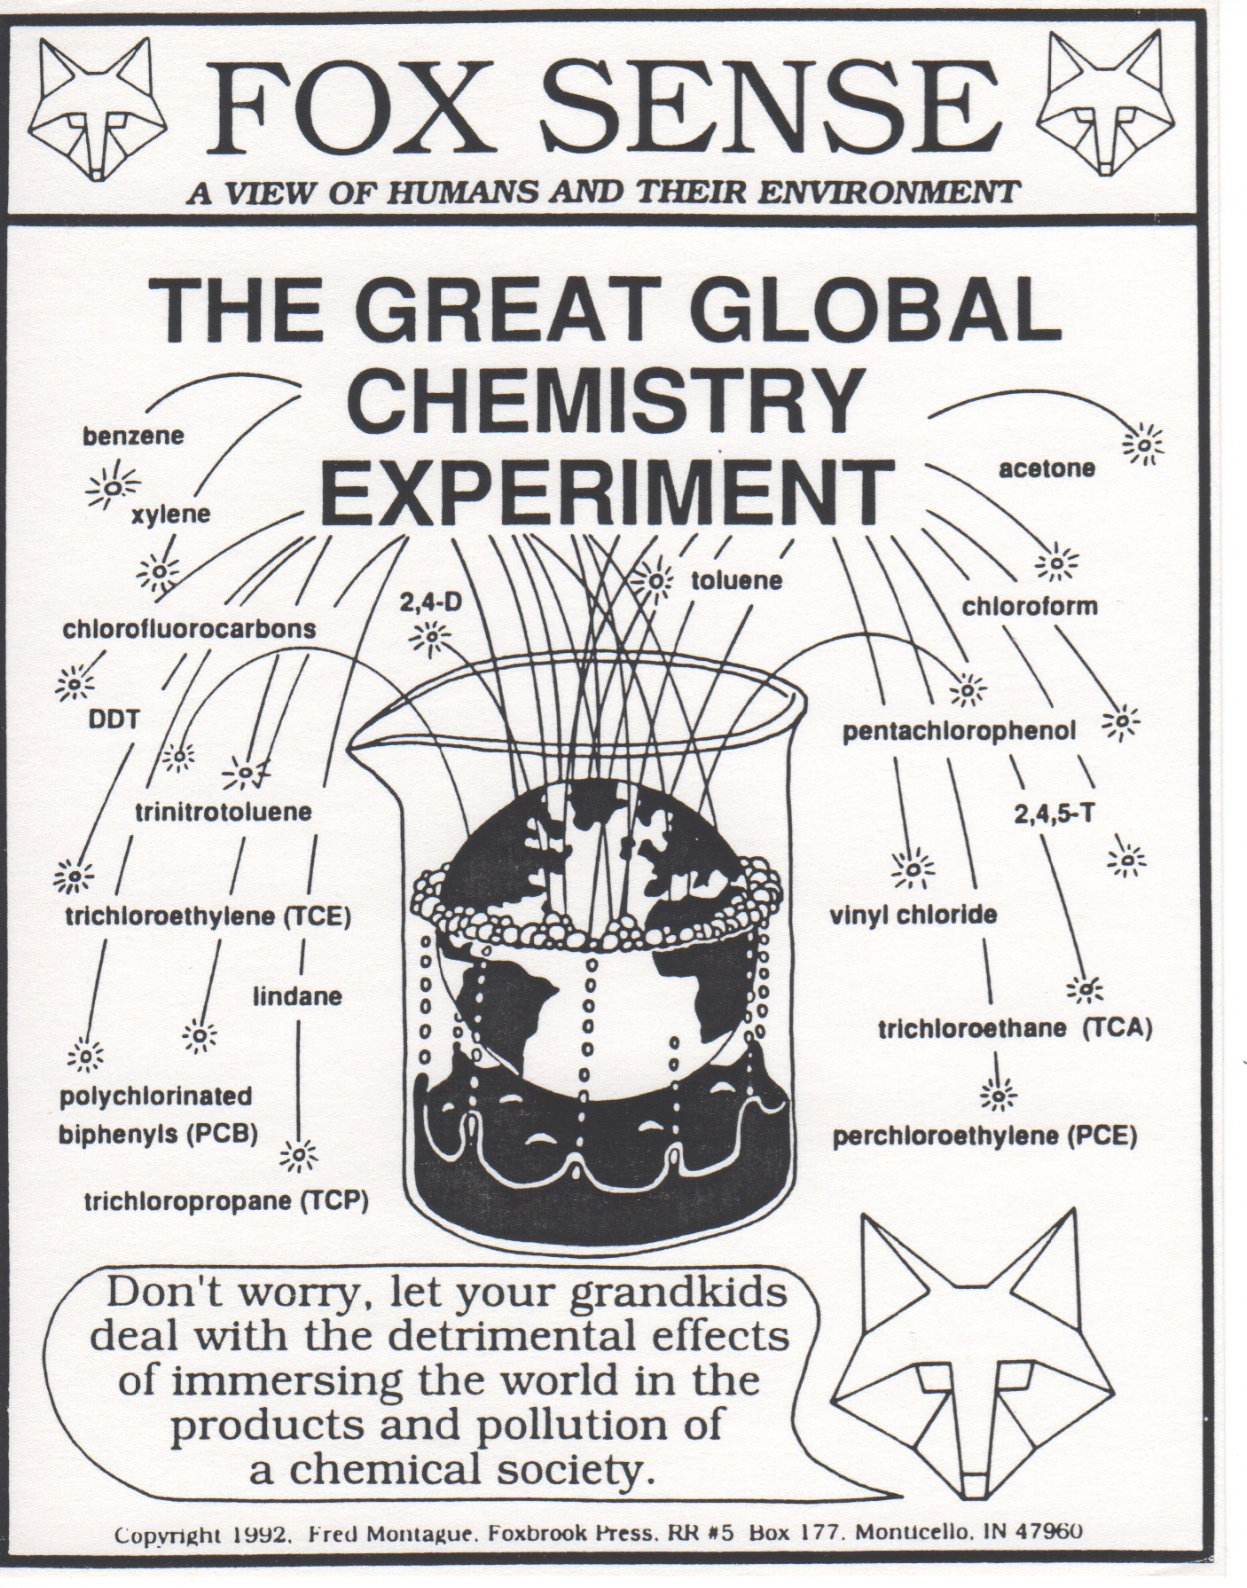 """The Great Global Chemistry Experiment"" from Fred Montague's  Foxsense . © 1992 Fred Montague"